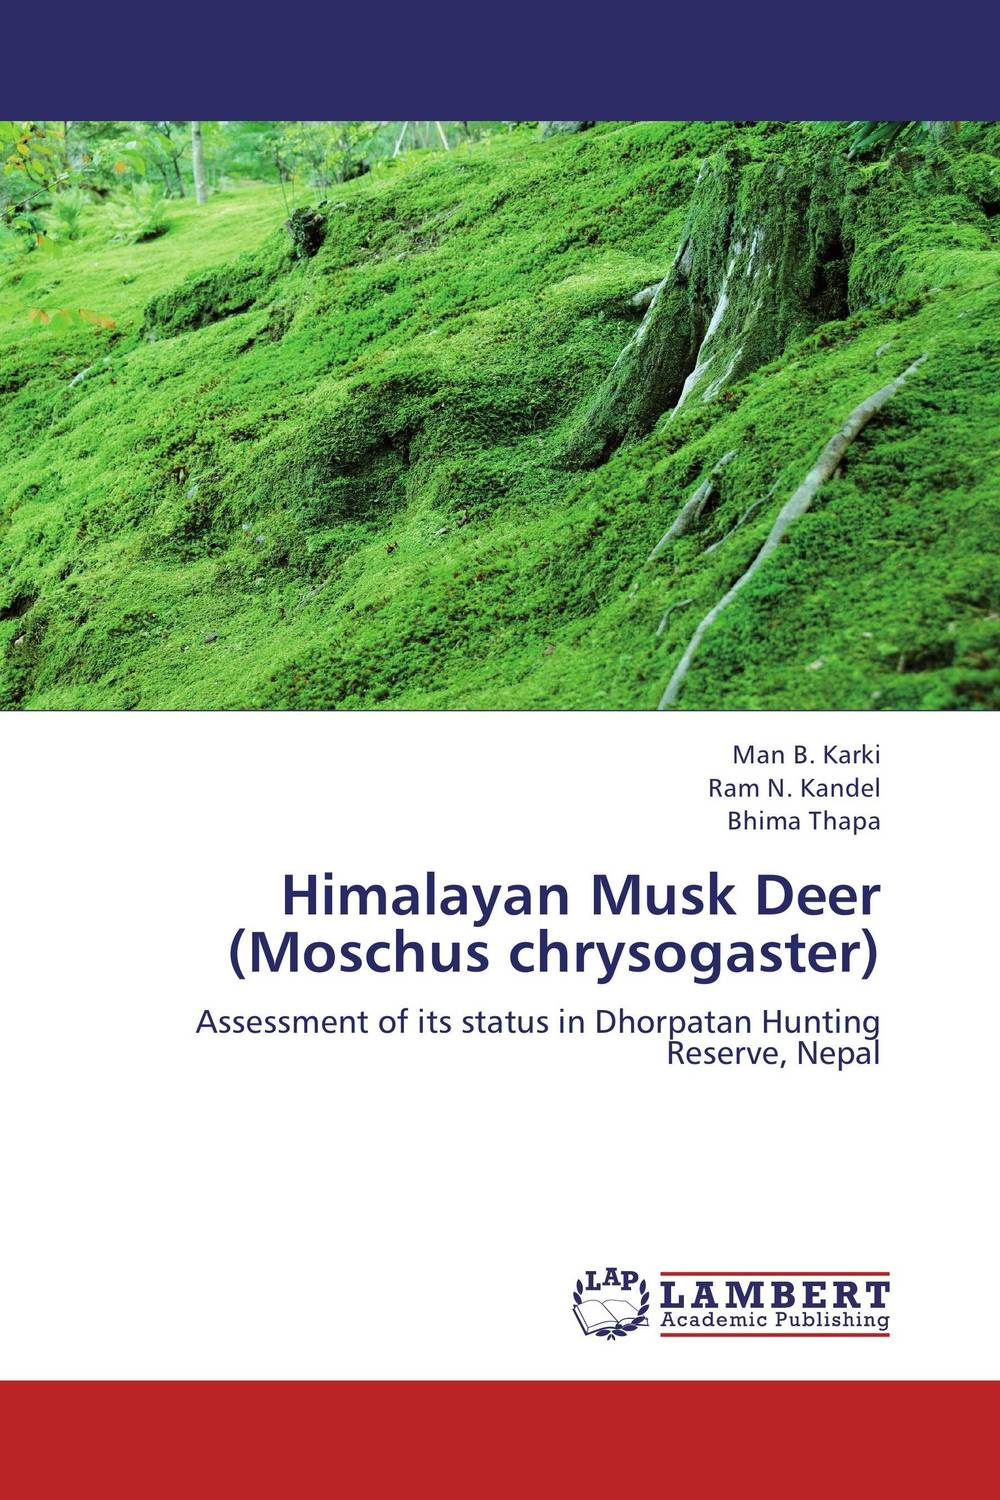 Himalayan Musk Deer (Moschus chrysogaster) elon musk and the quest for a fantastic future